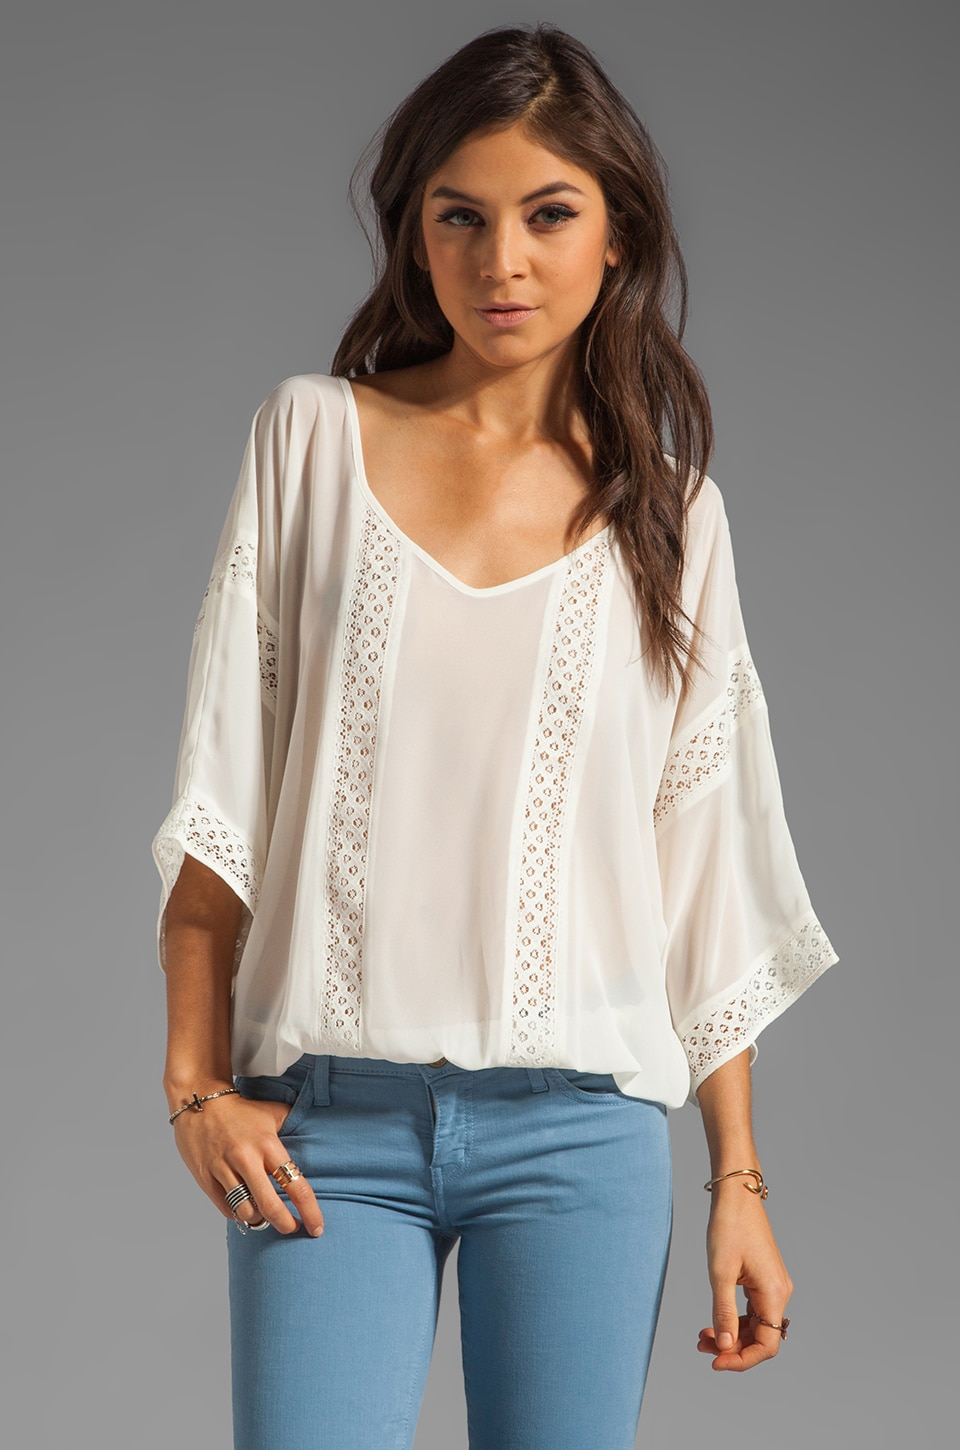 Sanctuary Cheyenne Top in Muslin